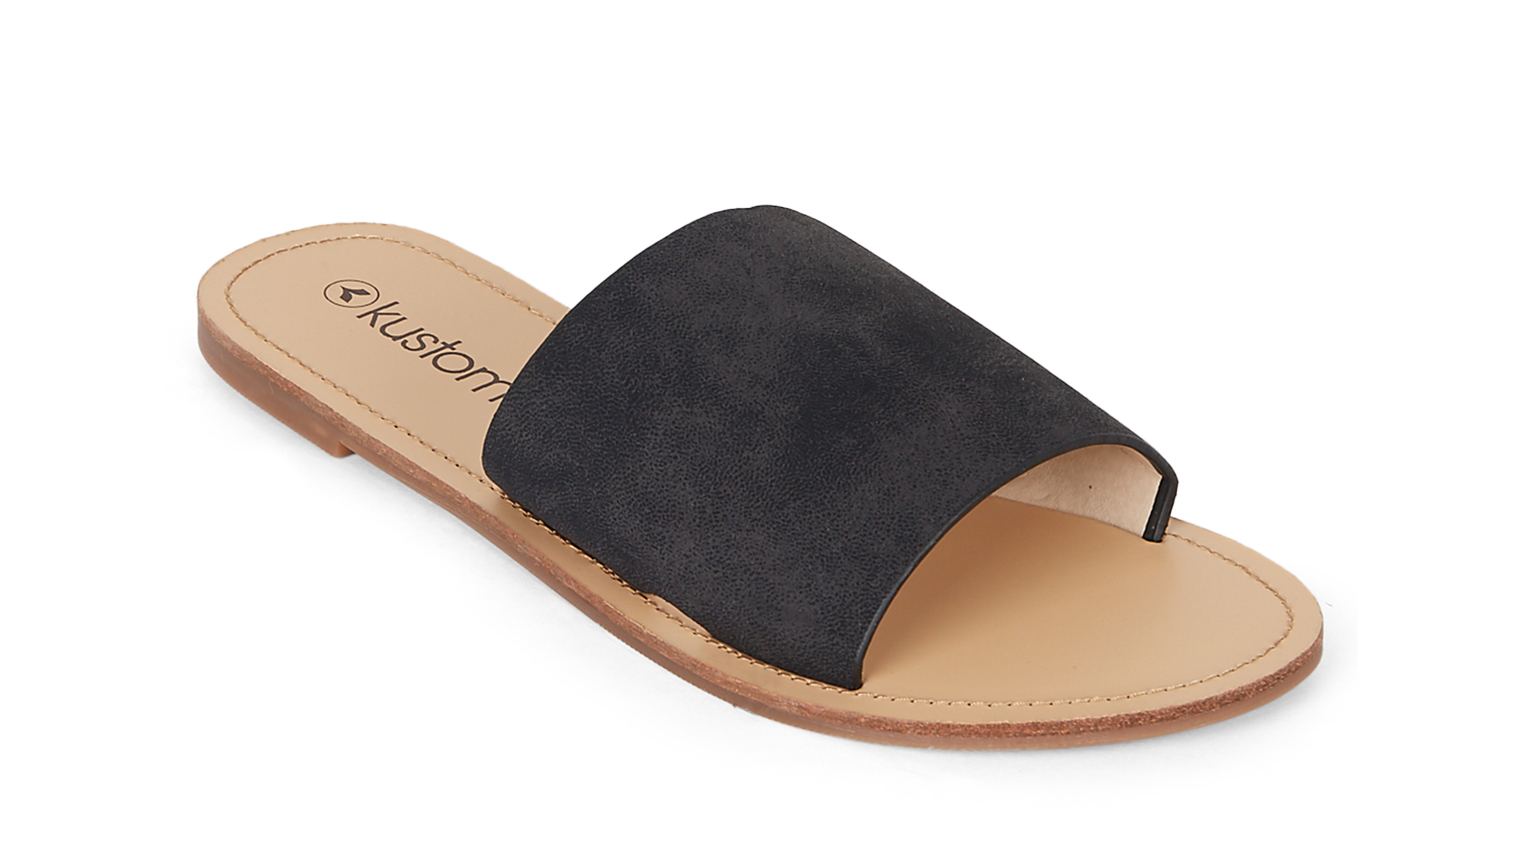 KUSTOM THONGS & SANDALS BYRON SANDAL / BLACK TAN